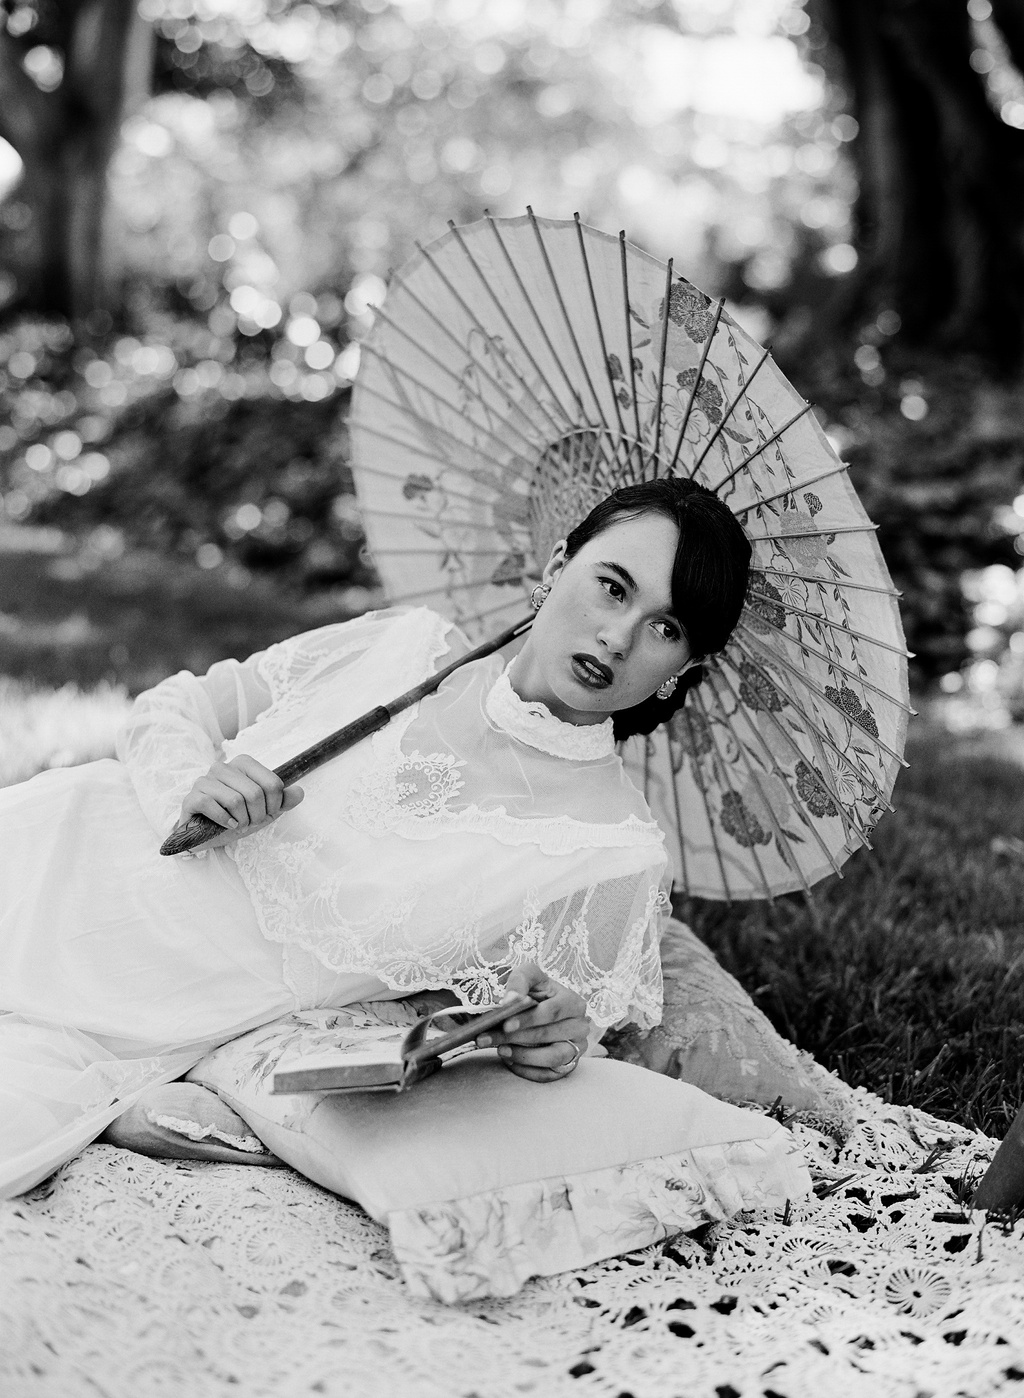 Styled-wedding-beaux-arts-tea-time-monique-lhuillier-santa-barbara-chic-bride-umbrella-photography-52.full